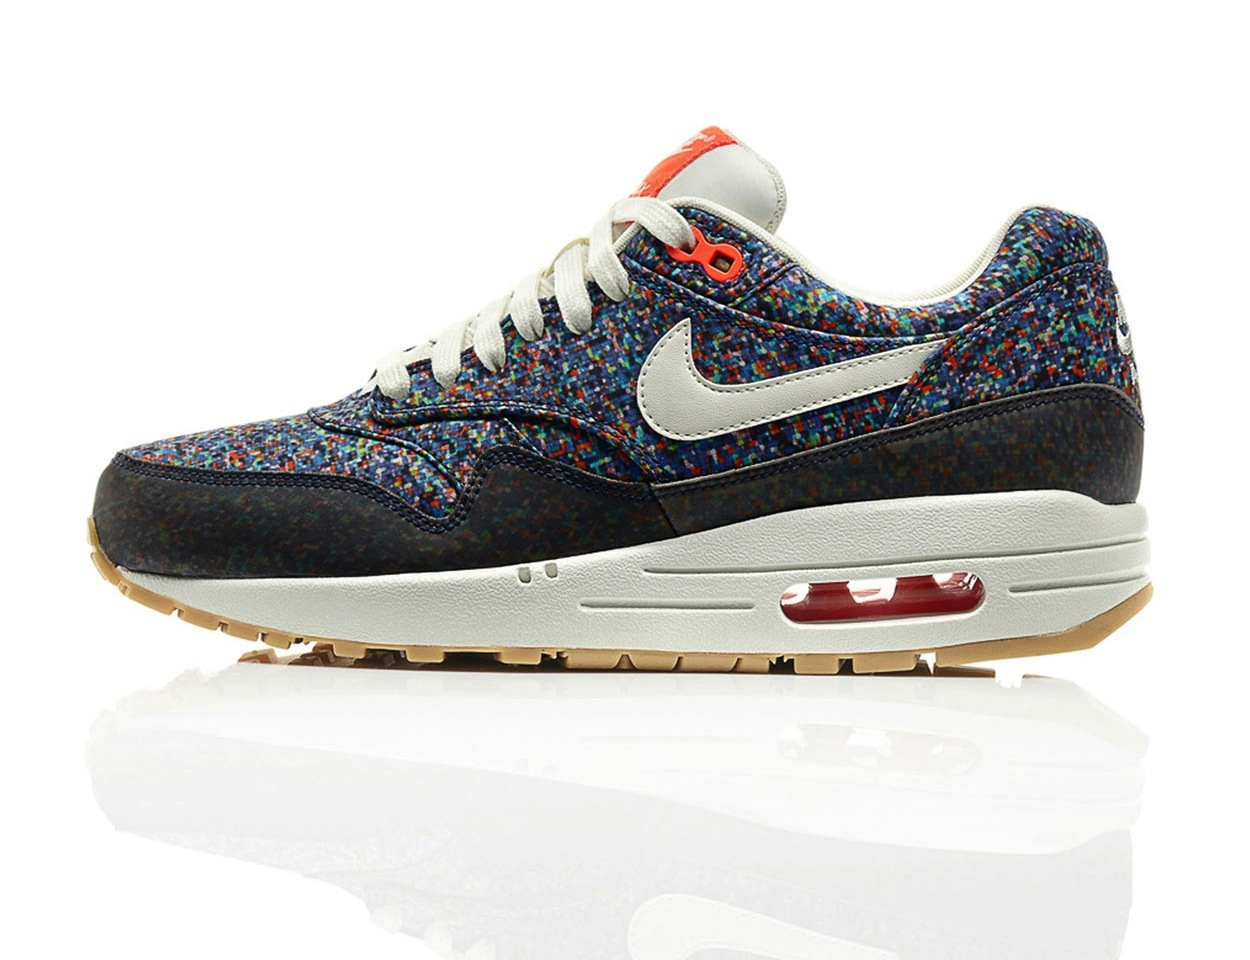 The Nike Air Max 1 gets the Liberty treatment with the playful print.